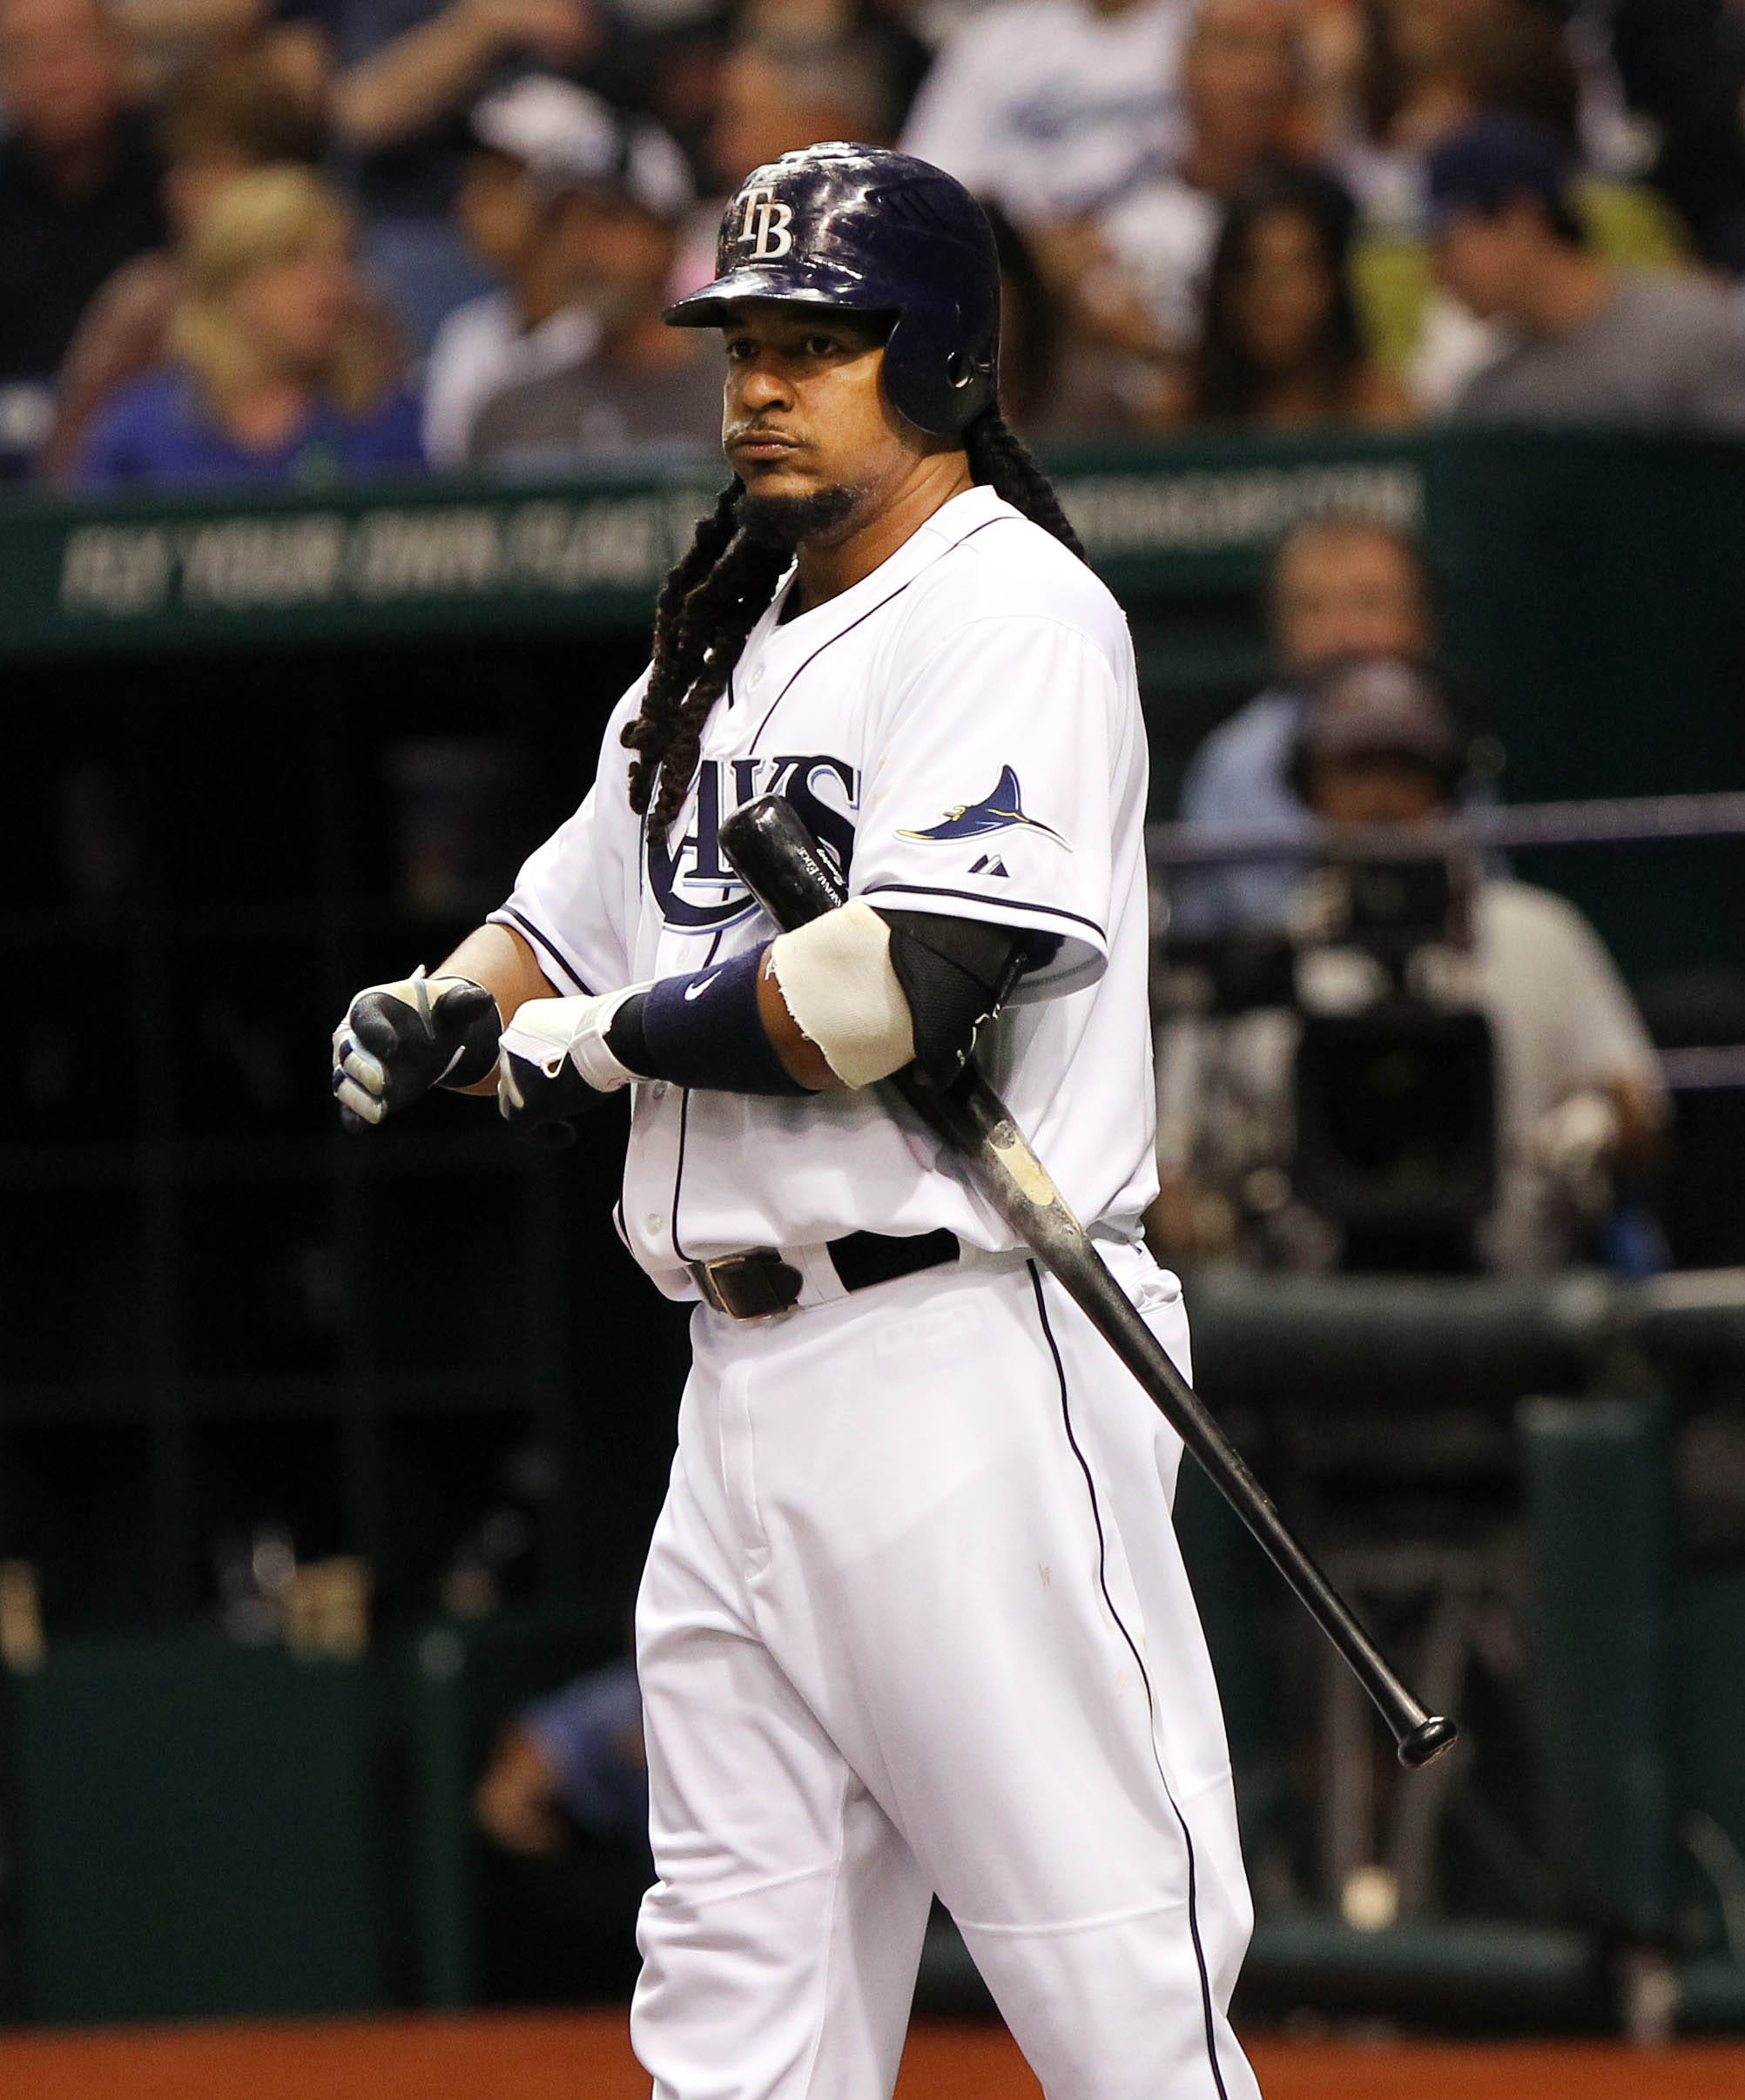 dfee6ebd6 http://www.usatoday.com/picture-gallery/sports/mlb/2014/06/19/recent ...